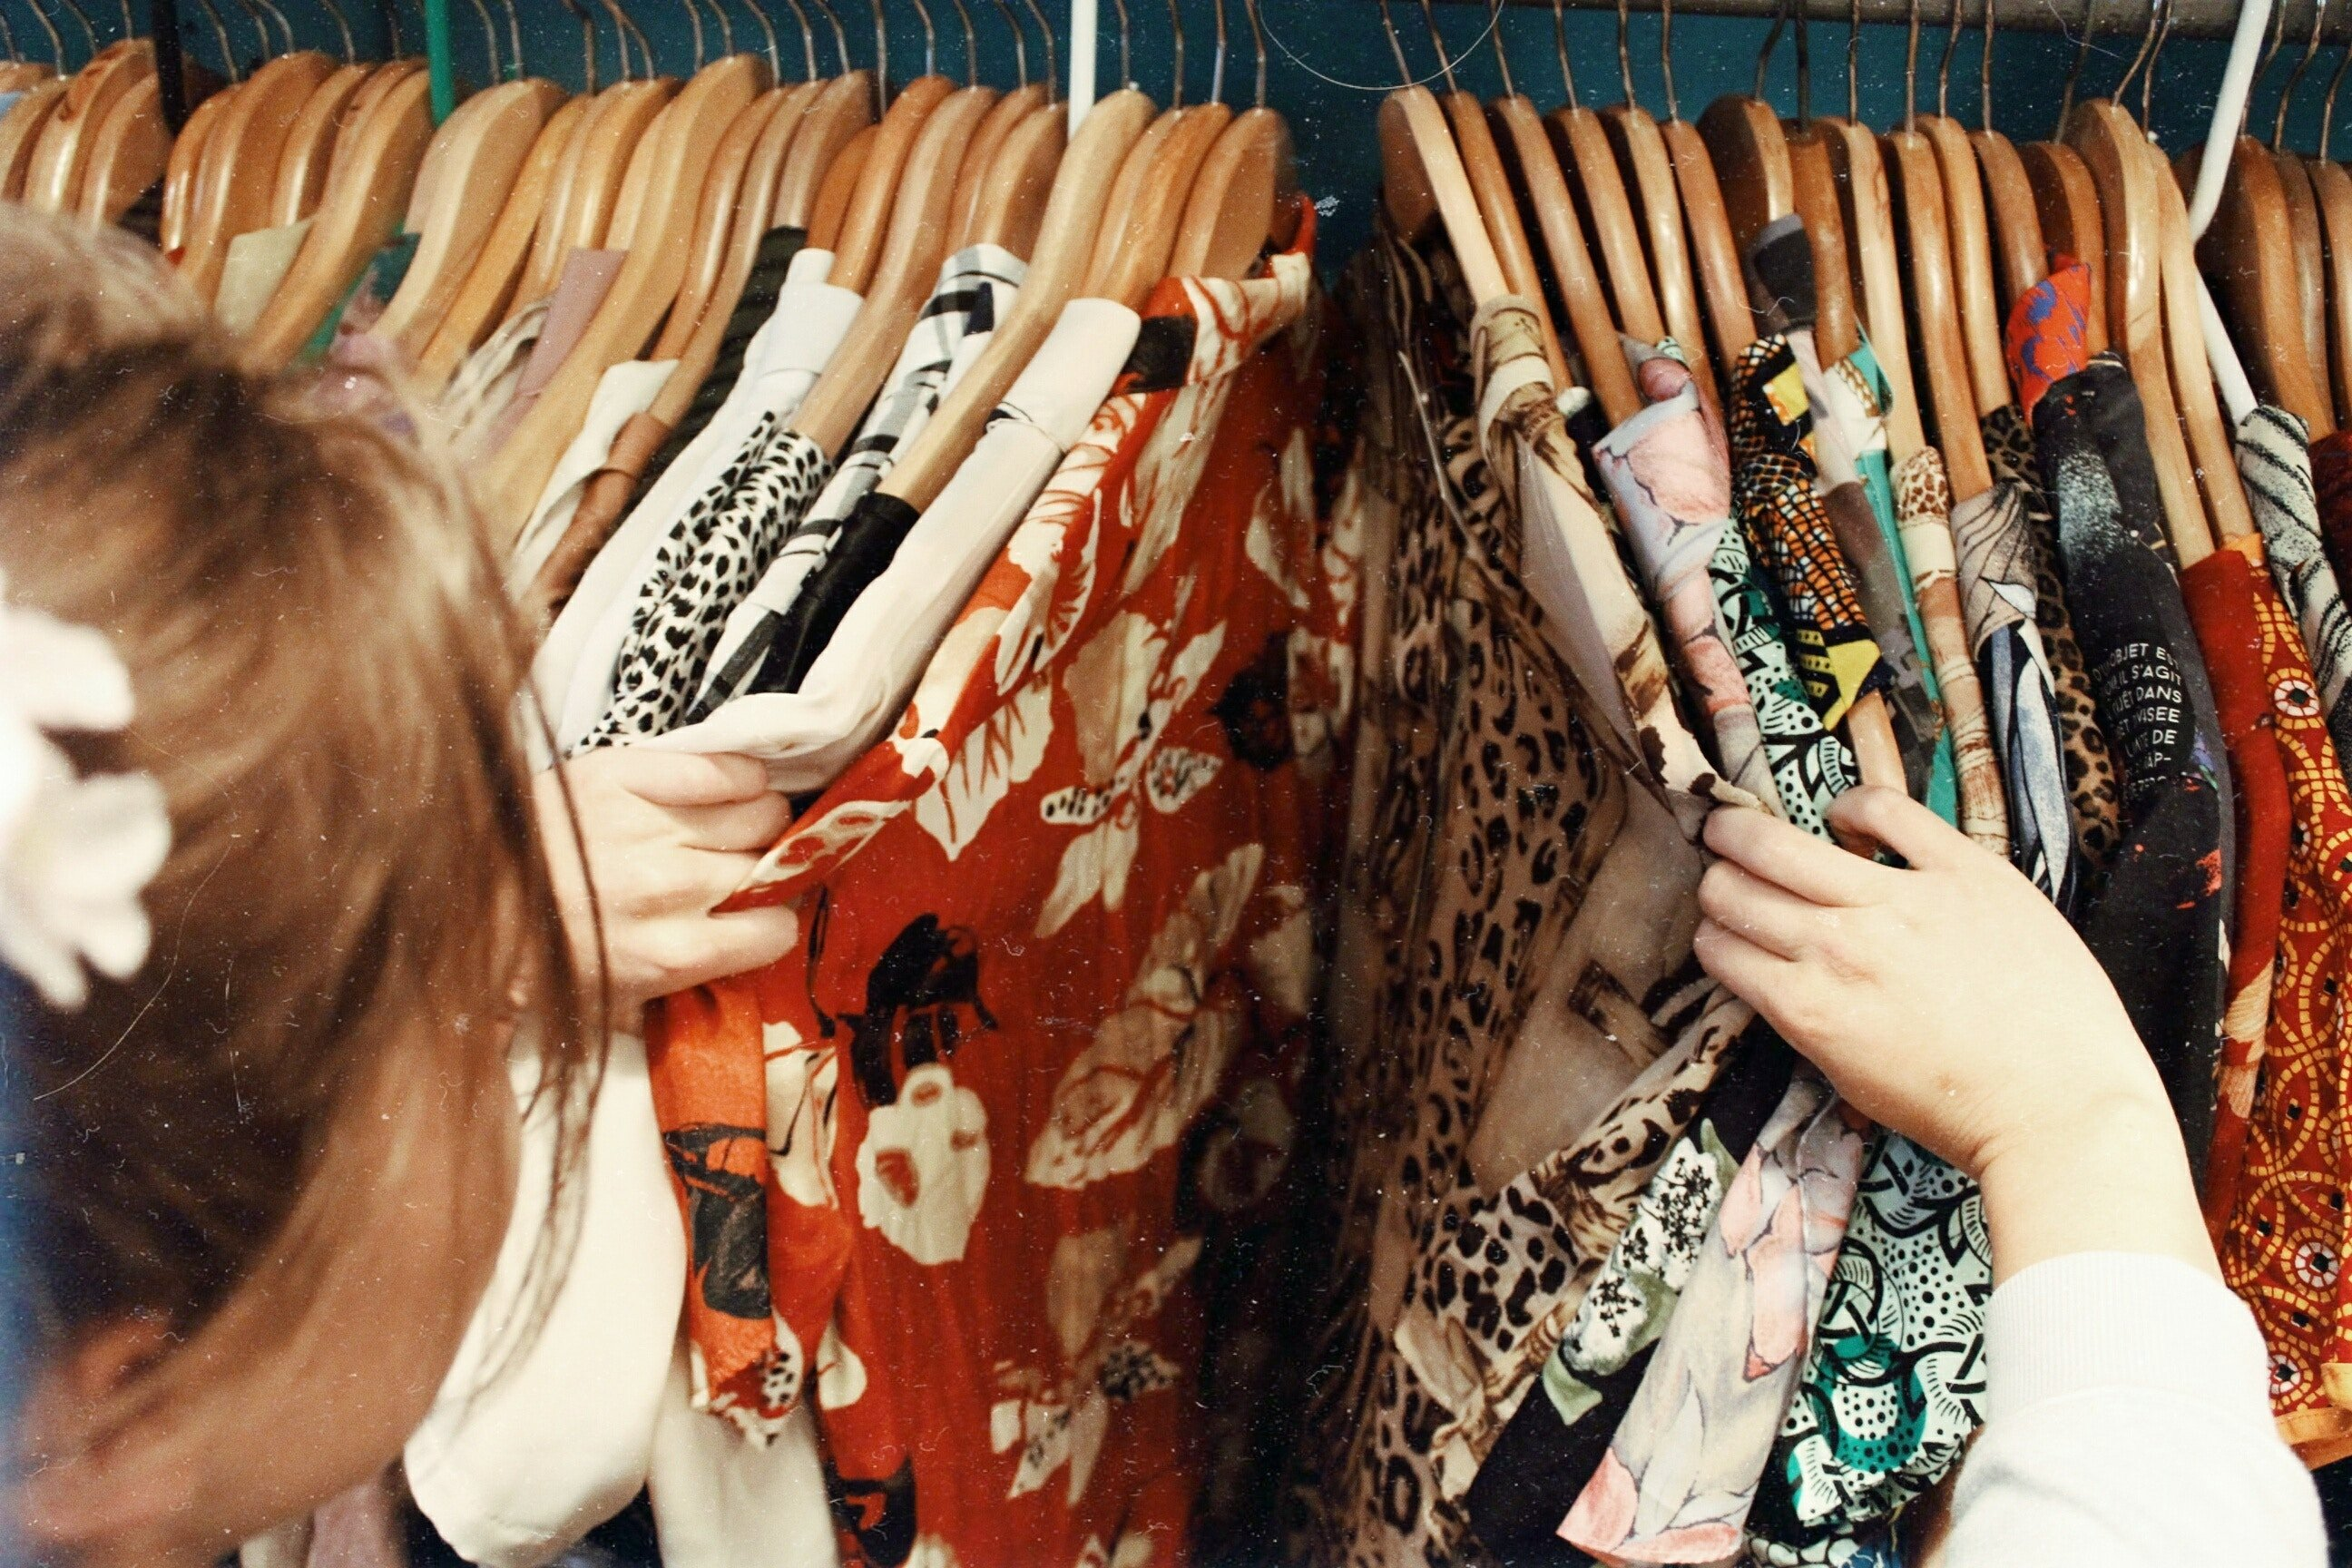 Vintage clothes second hand stores charity shops